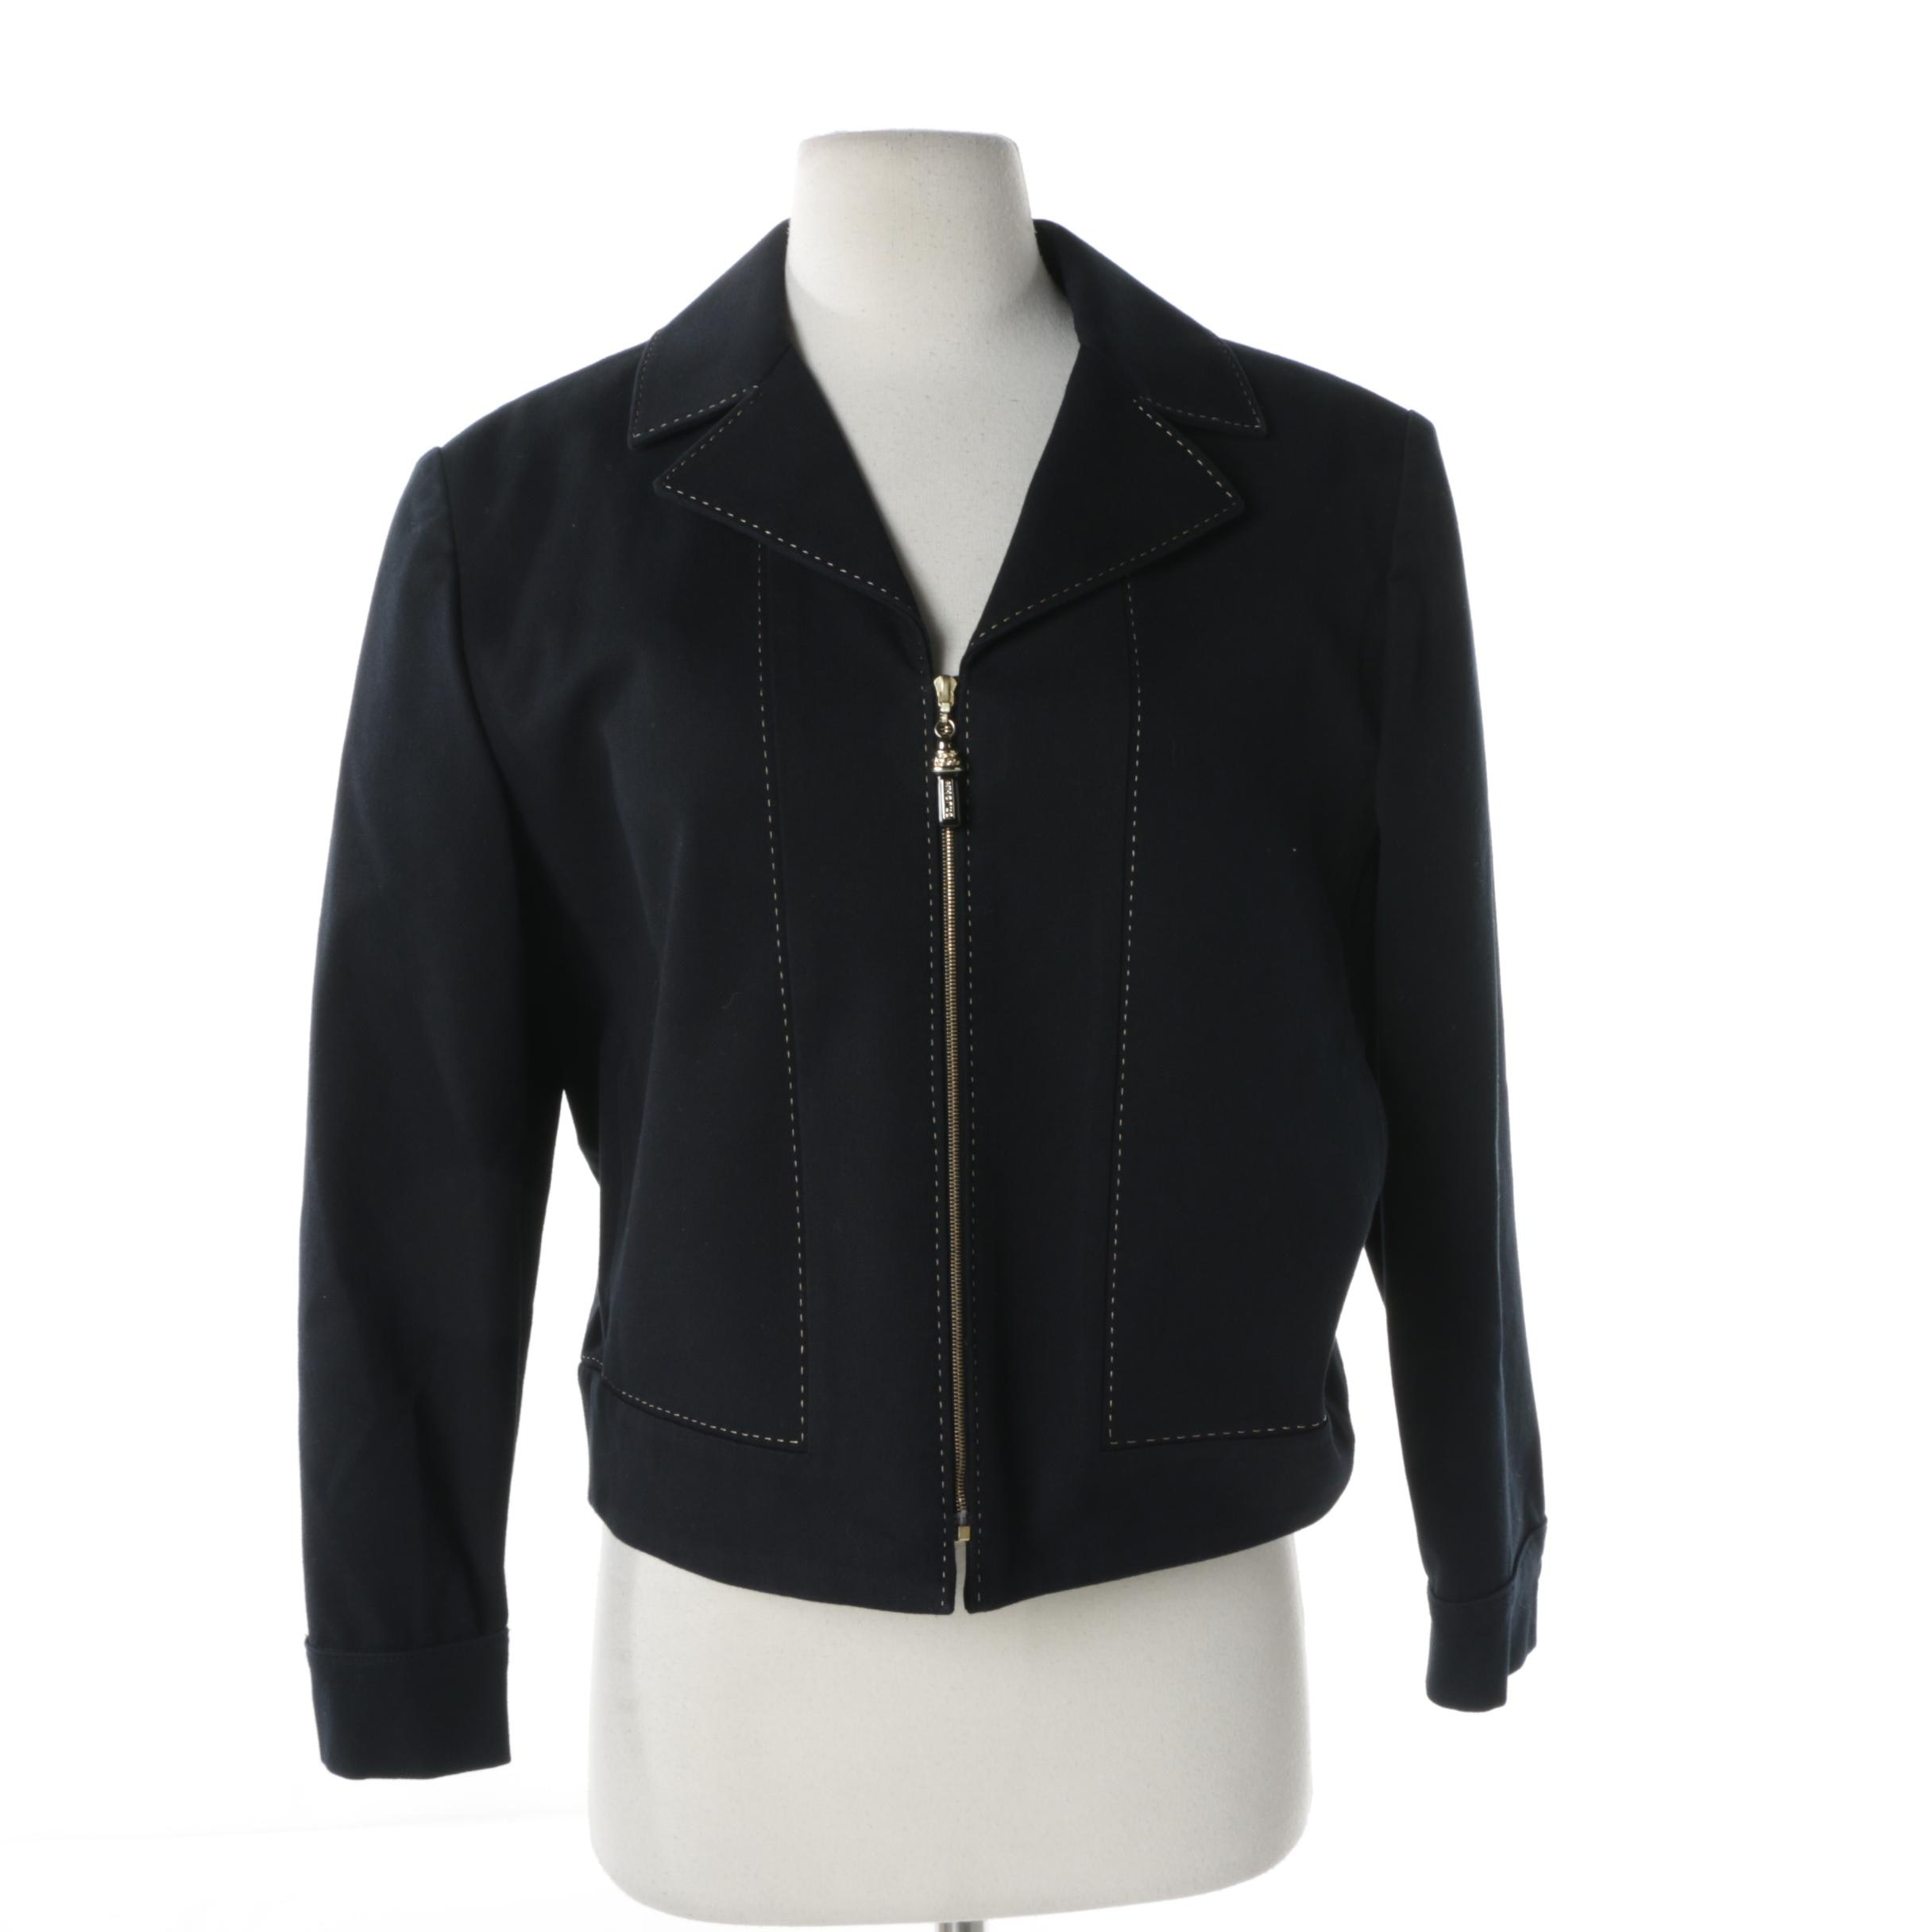 St. John Sport Black Zip Up Jacket with Contrast Stitching